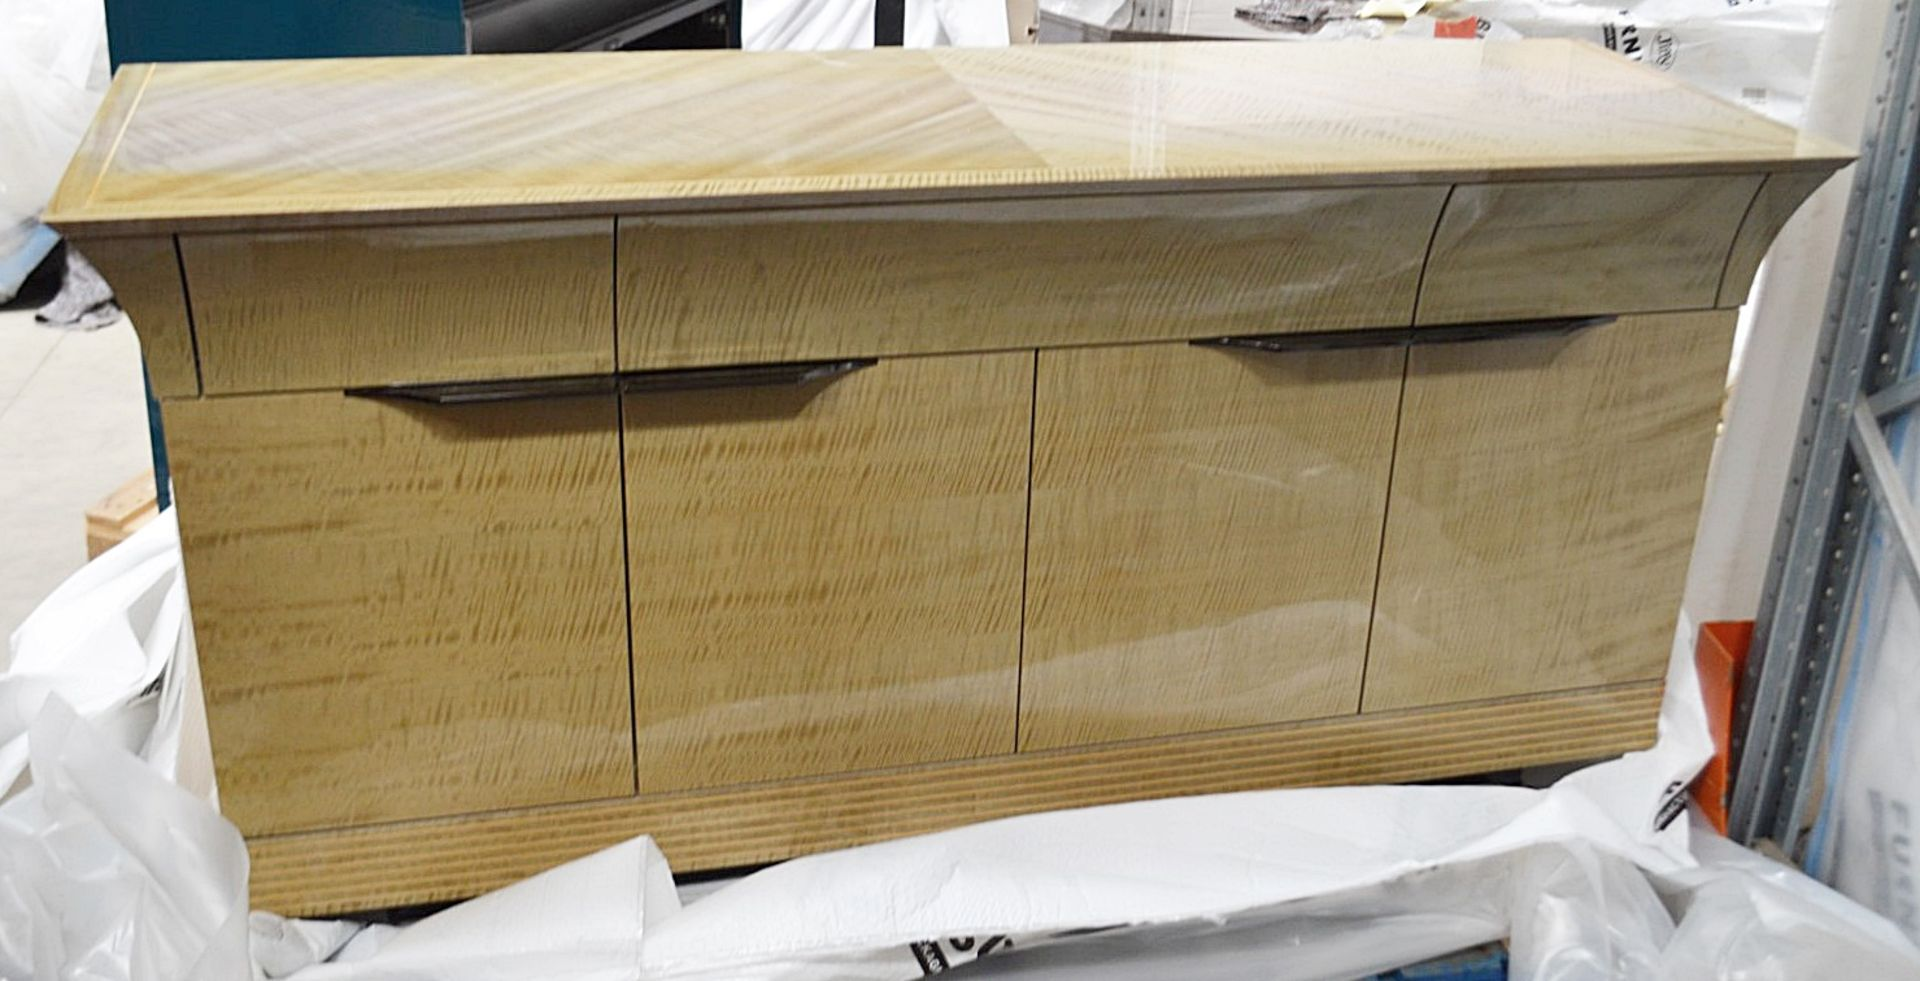 1 x GIORGIO COLLECTION 'Alchemy' Buffet / Sideboard Unit (Model: 6810/80) - Original RRP £3,495 - Image 8 of 8